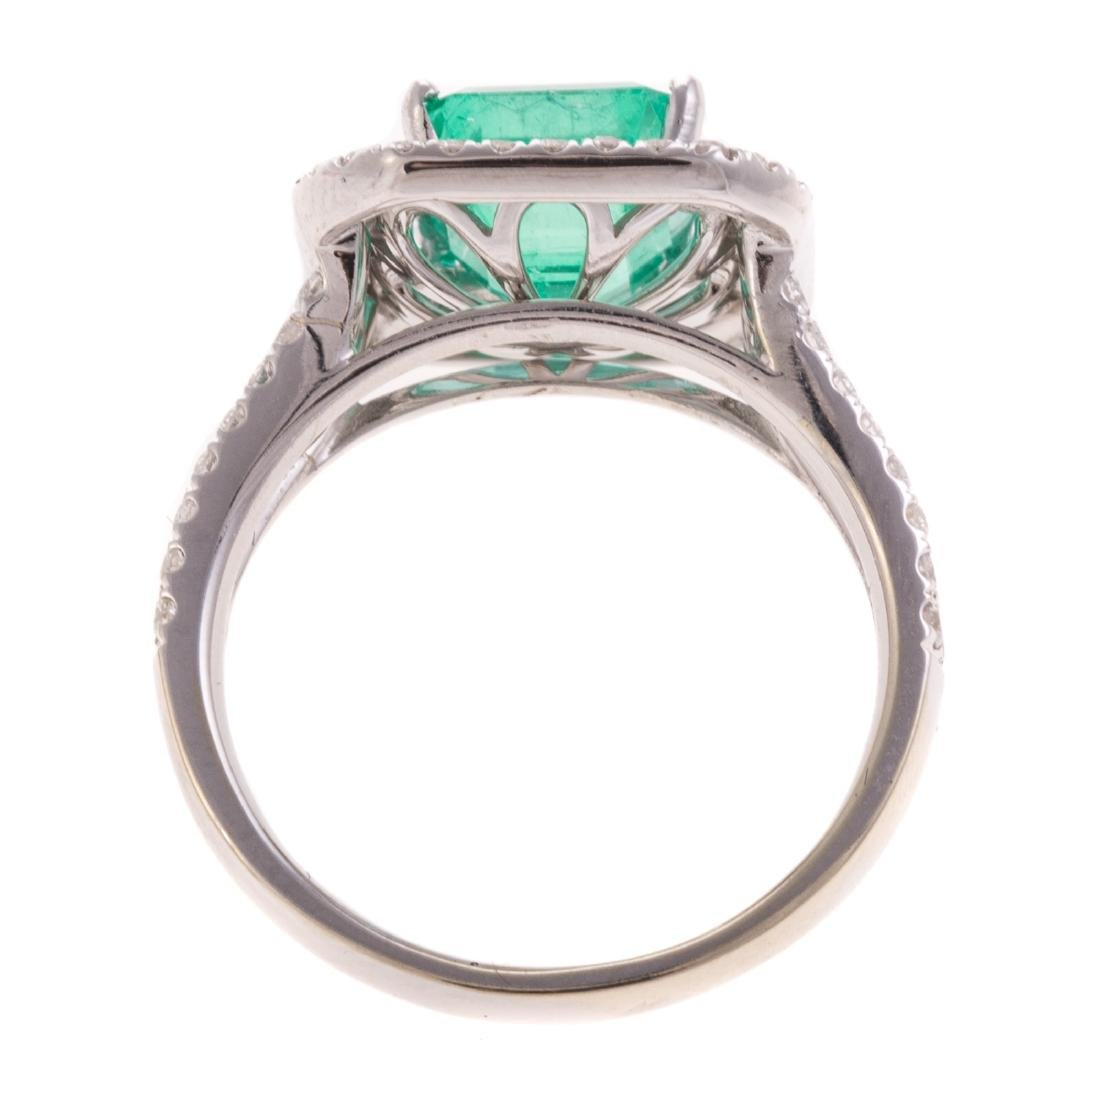 A 2.60ct Emerald & Diamond Ring in Gold - 4